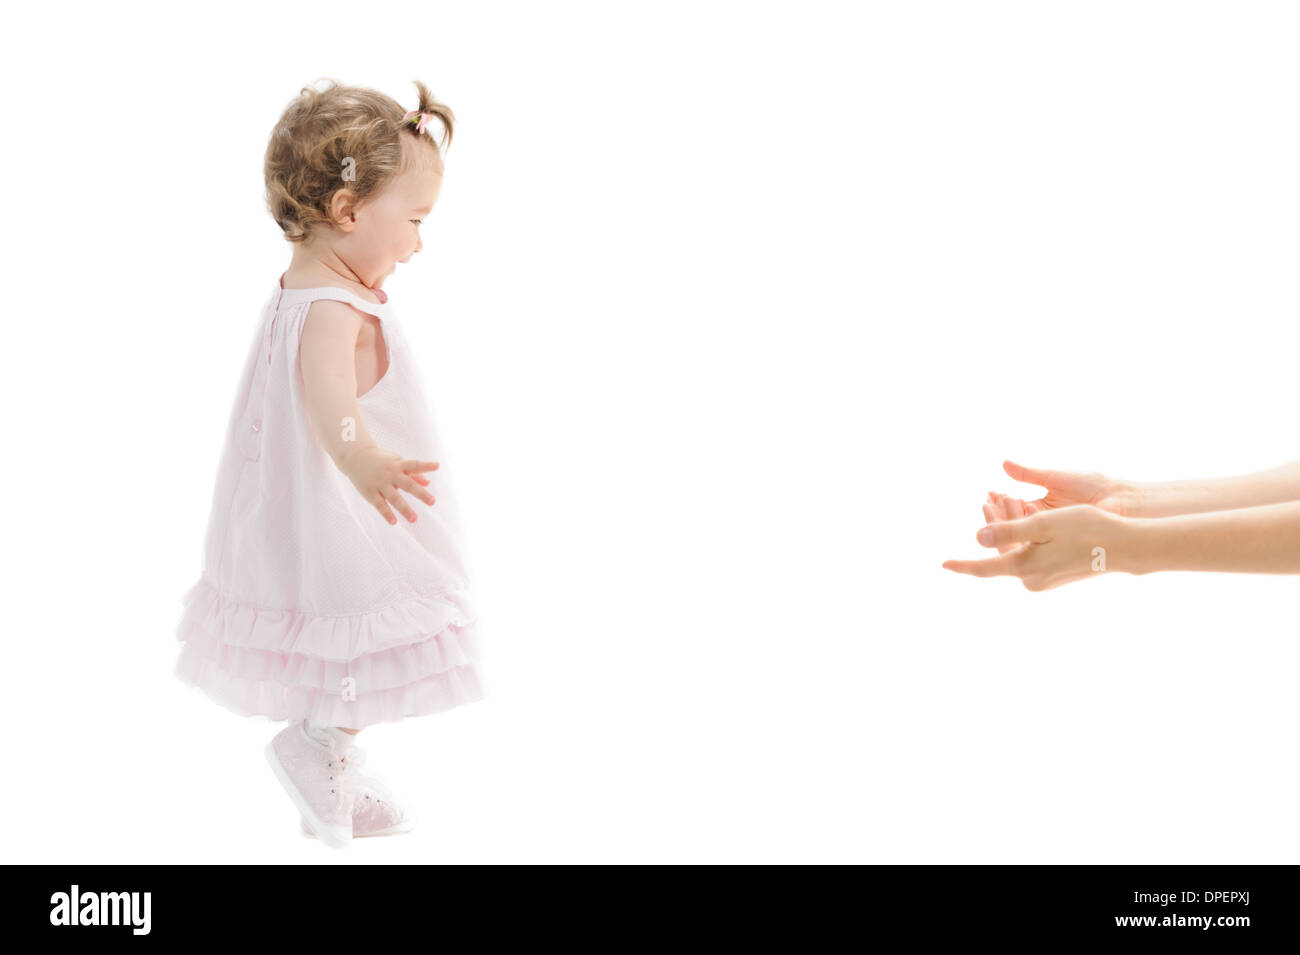 first steps of baby girl towards her mother's arms Isolated - Stock Image